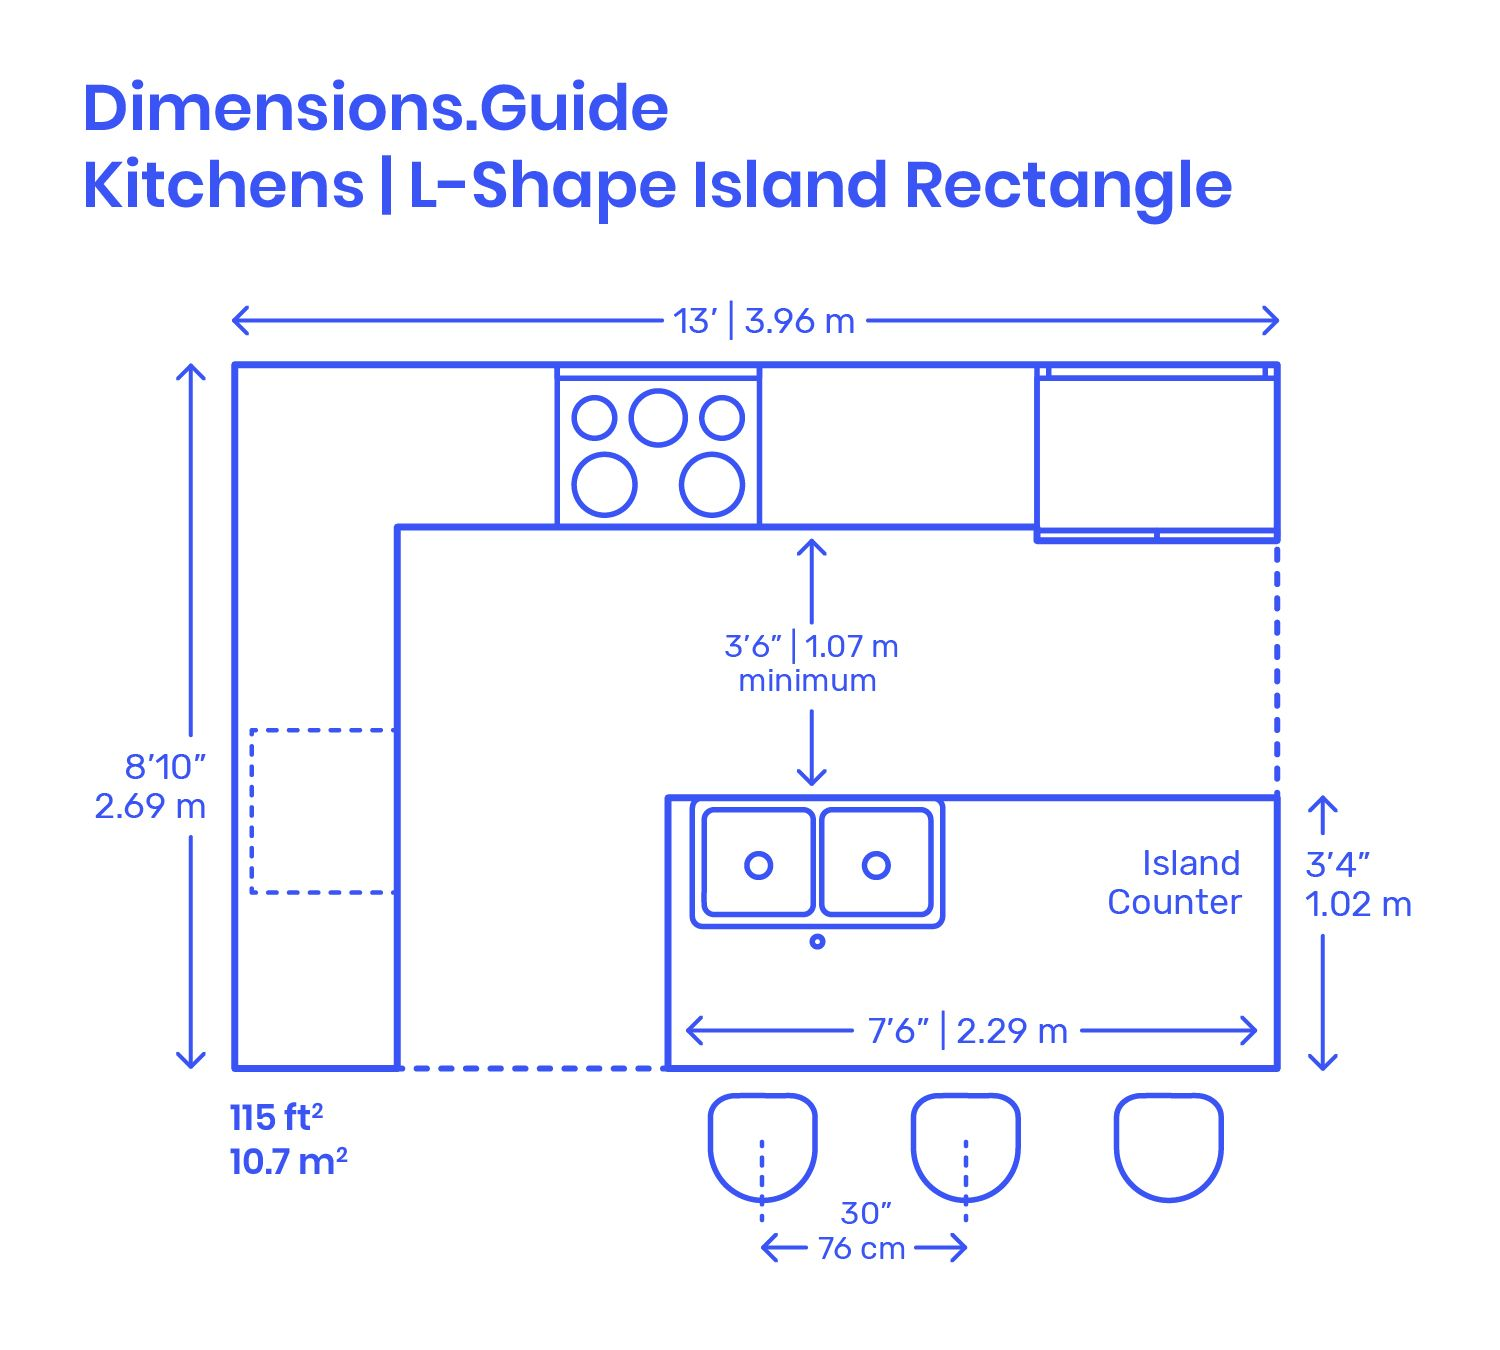 L Shape Kitchen Islands Are Common Kitchen Layouts That Use Two Adjacent Walls Or L Configuratio Kitchen Island Dimensions Kitchen Layout Plans Kitchen Layout